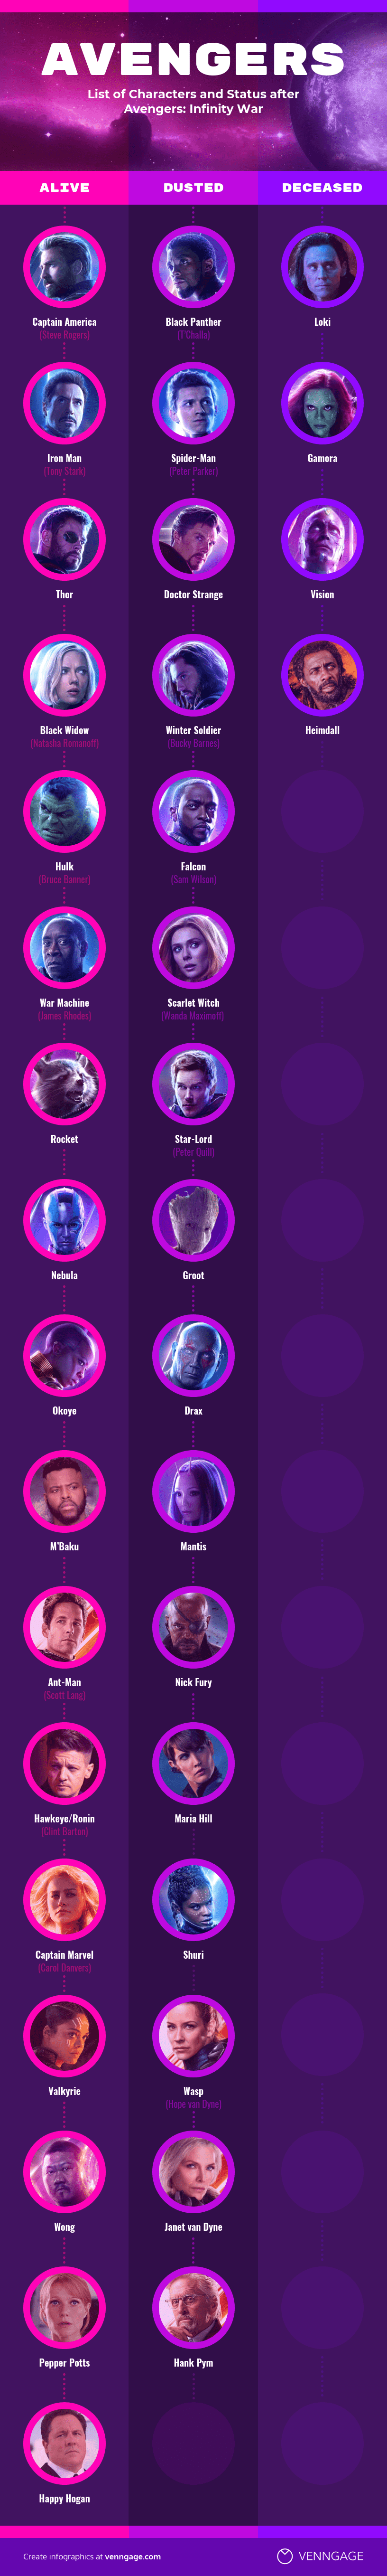 Avengers Character List Infographic Template